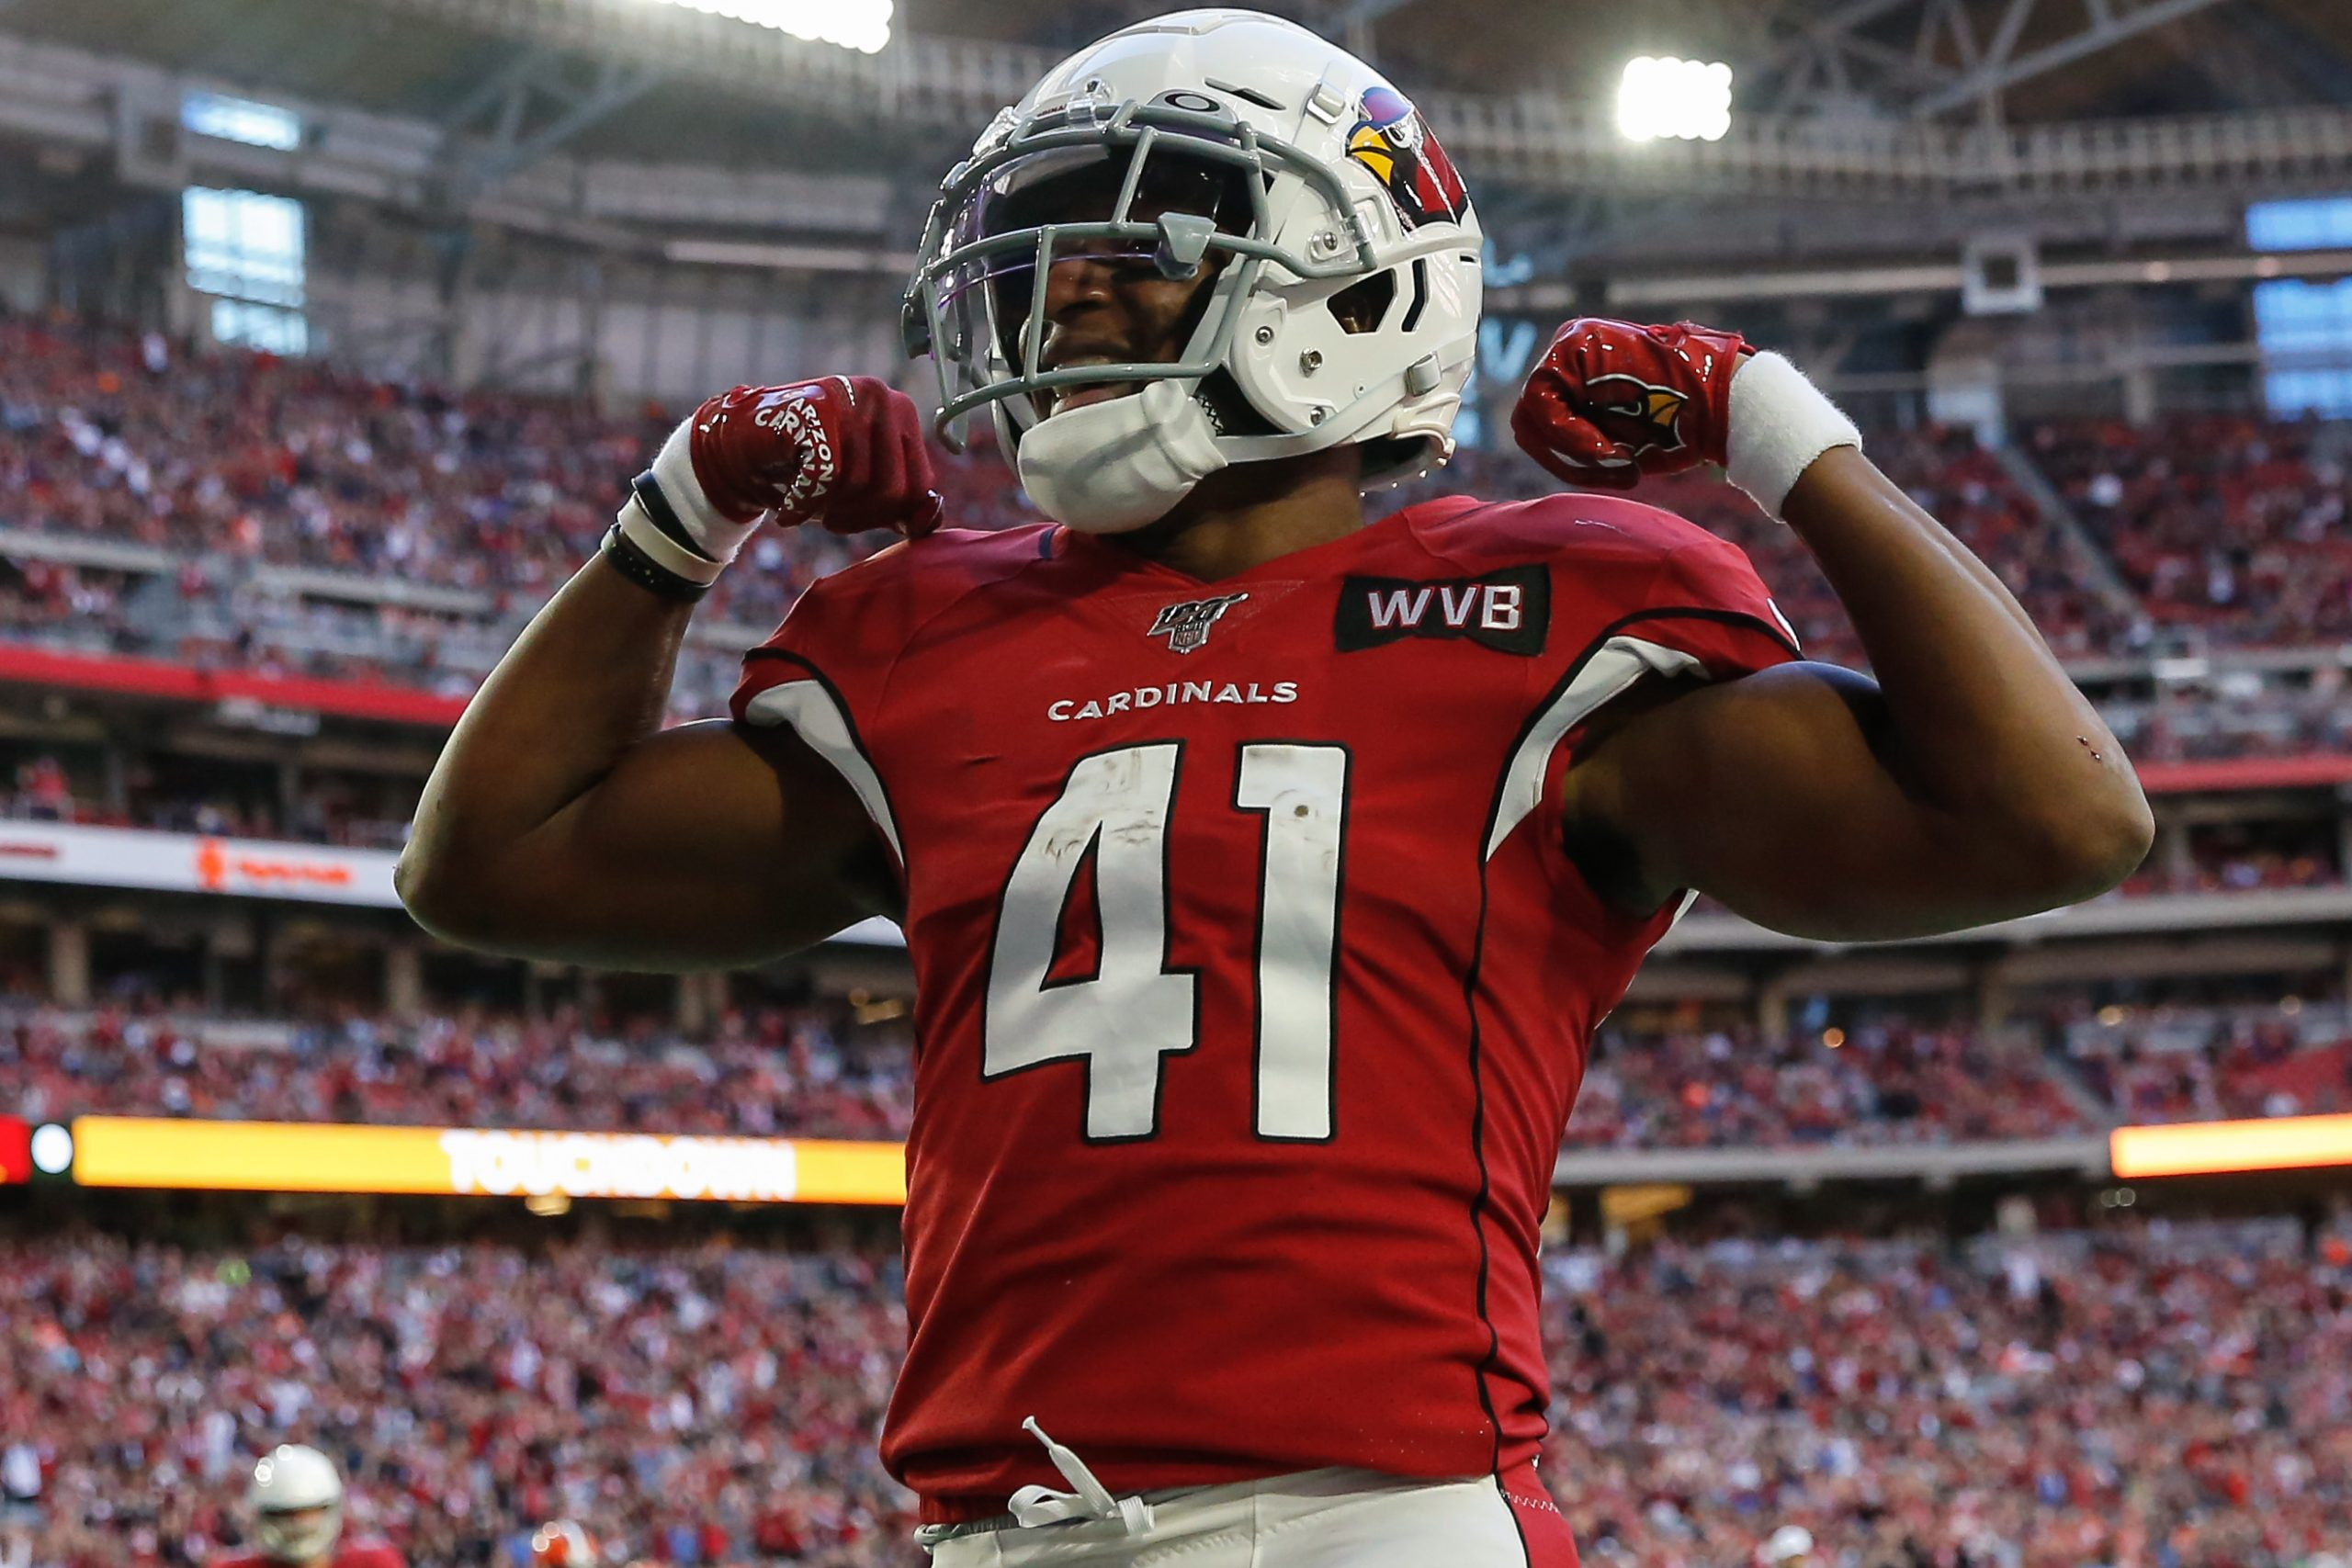 GLENDALE, AZ - DECEMBER 15: Arizona Cardinals running back Kenyan Drake (41) flexes after scoring a touchdown during the